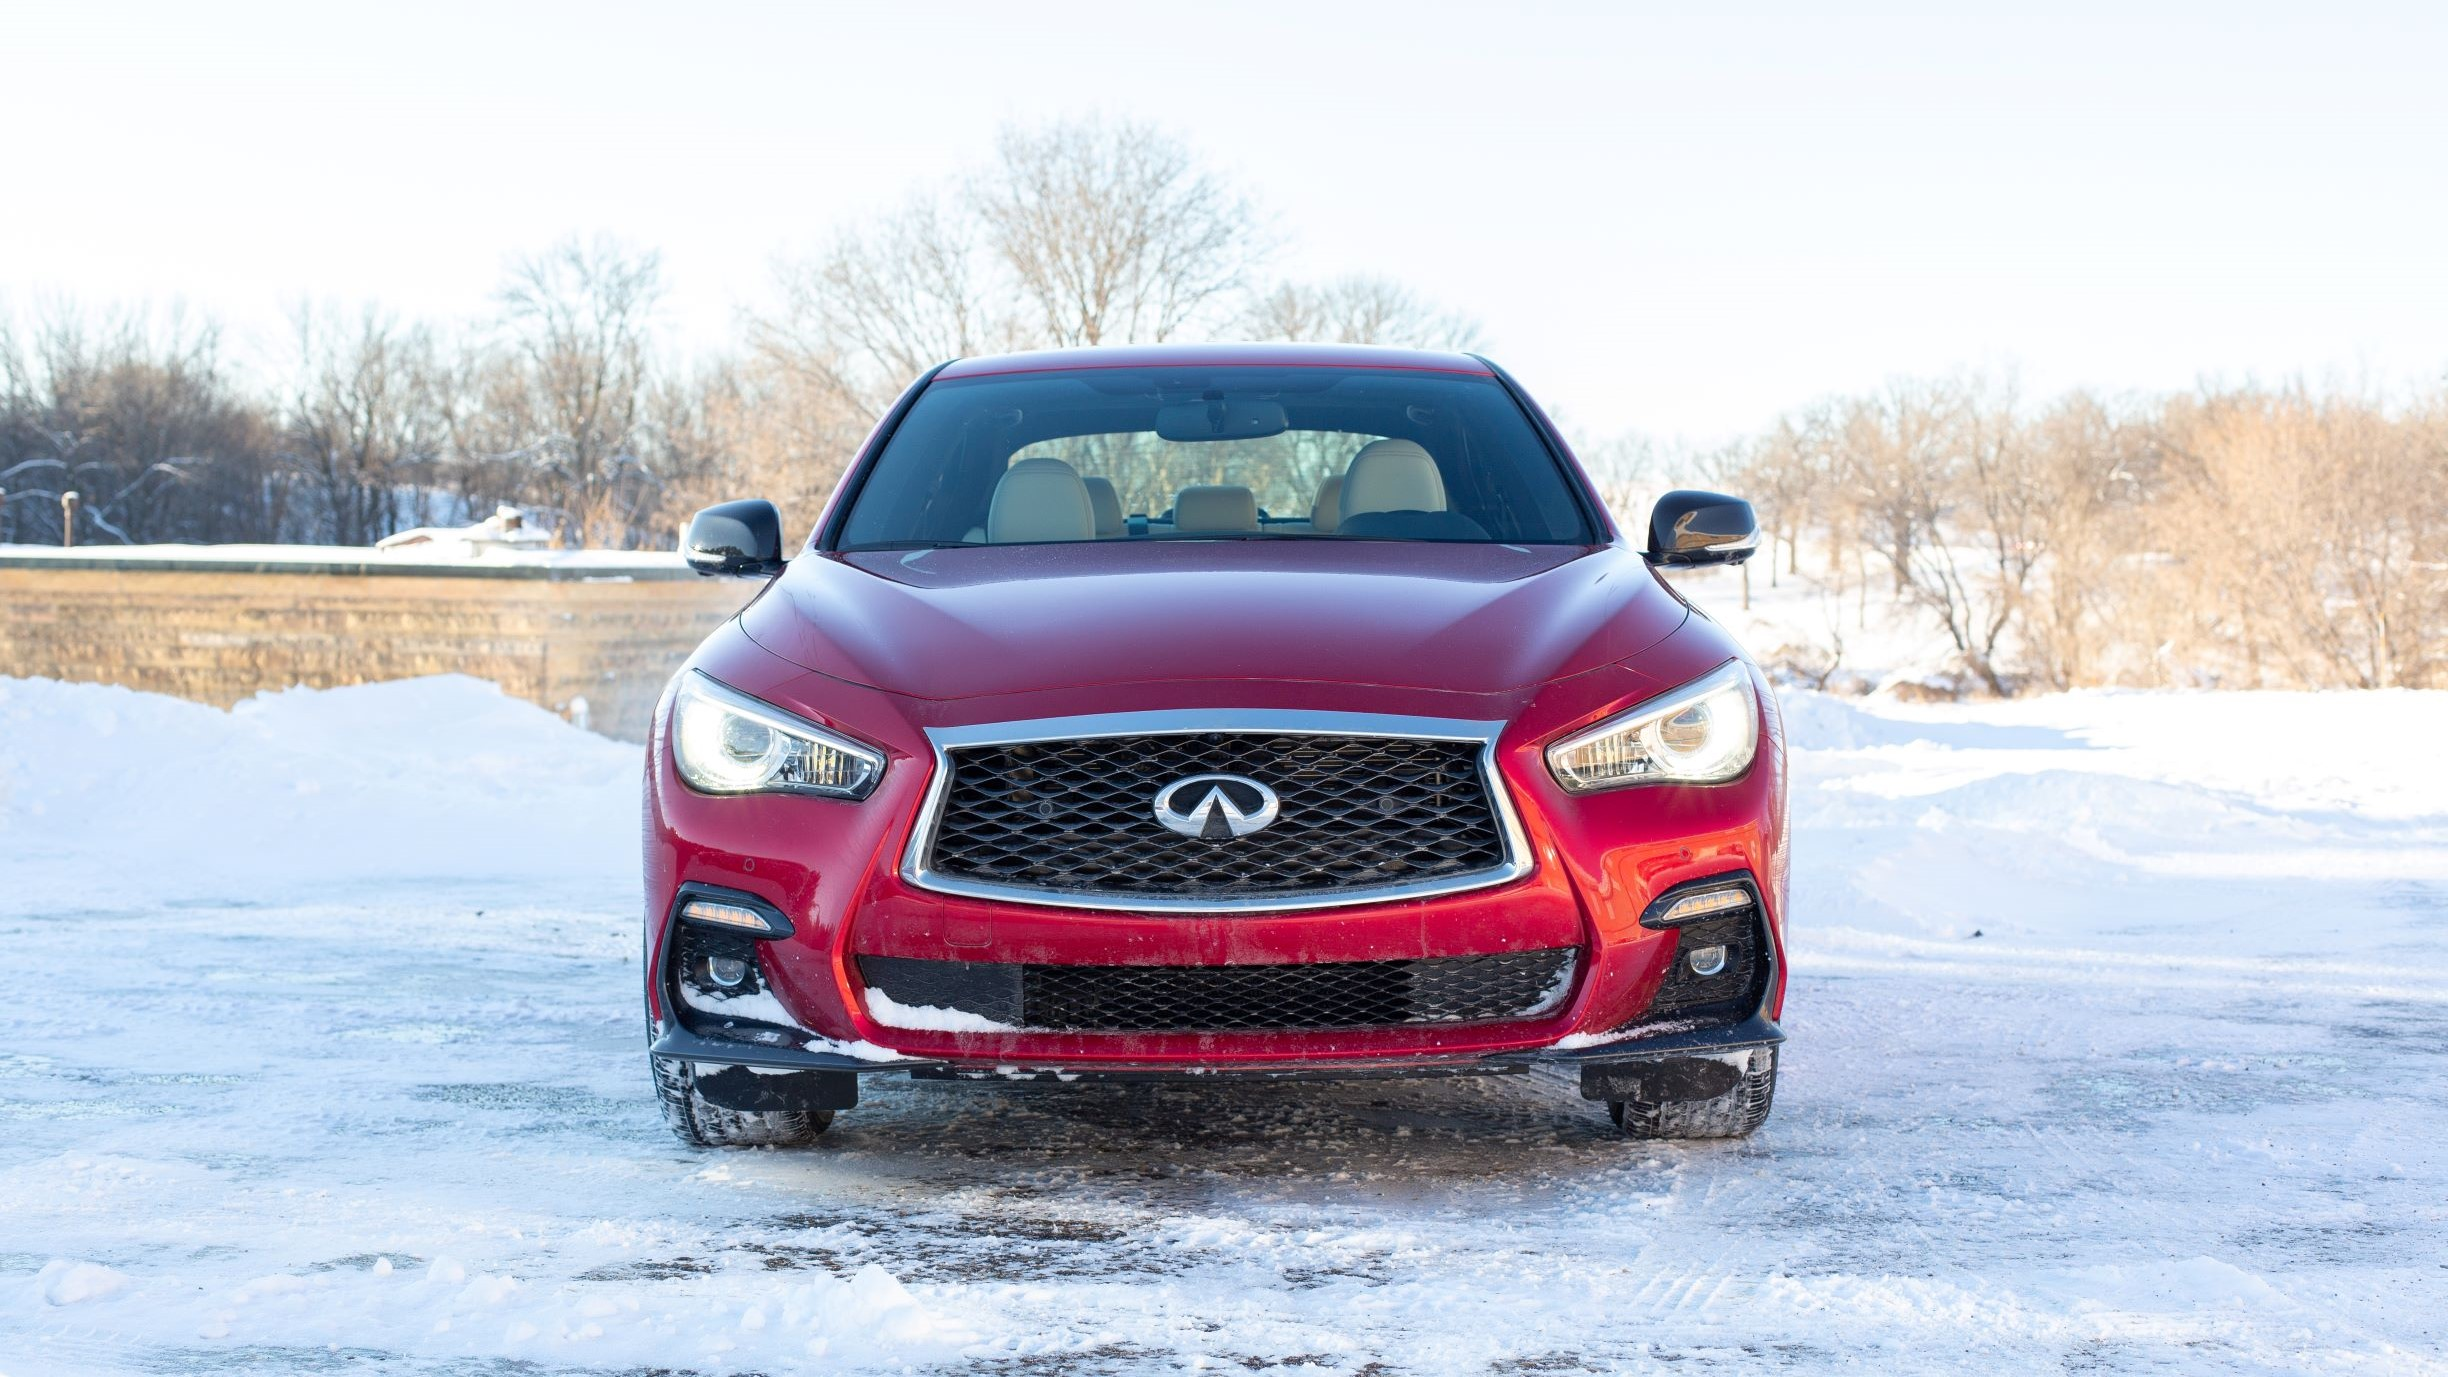 How the snow setting on the 2019 Infiniti Q50 actually works